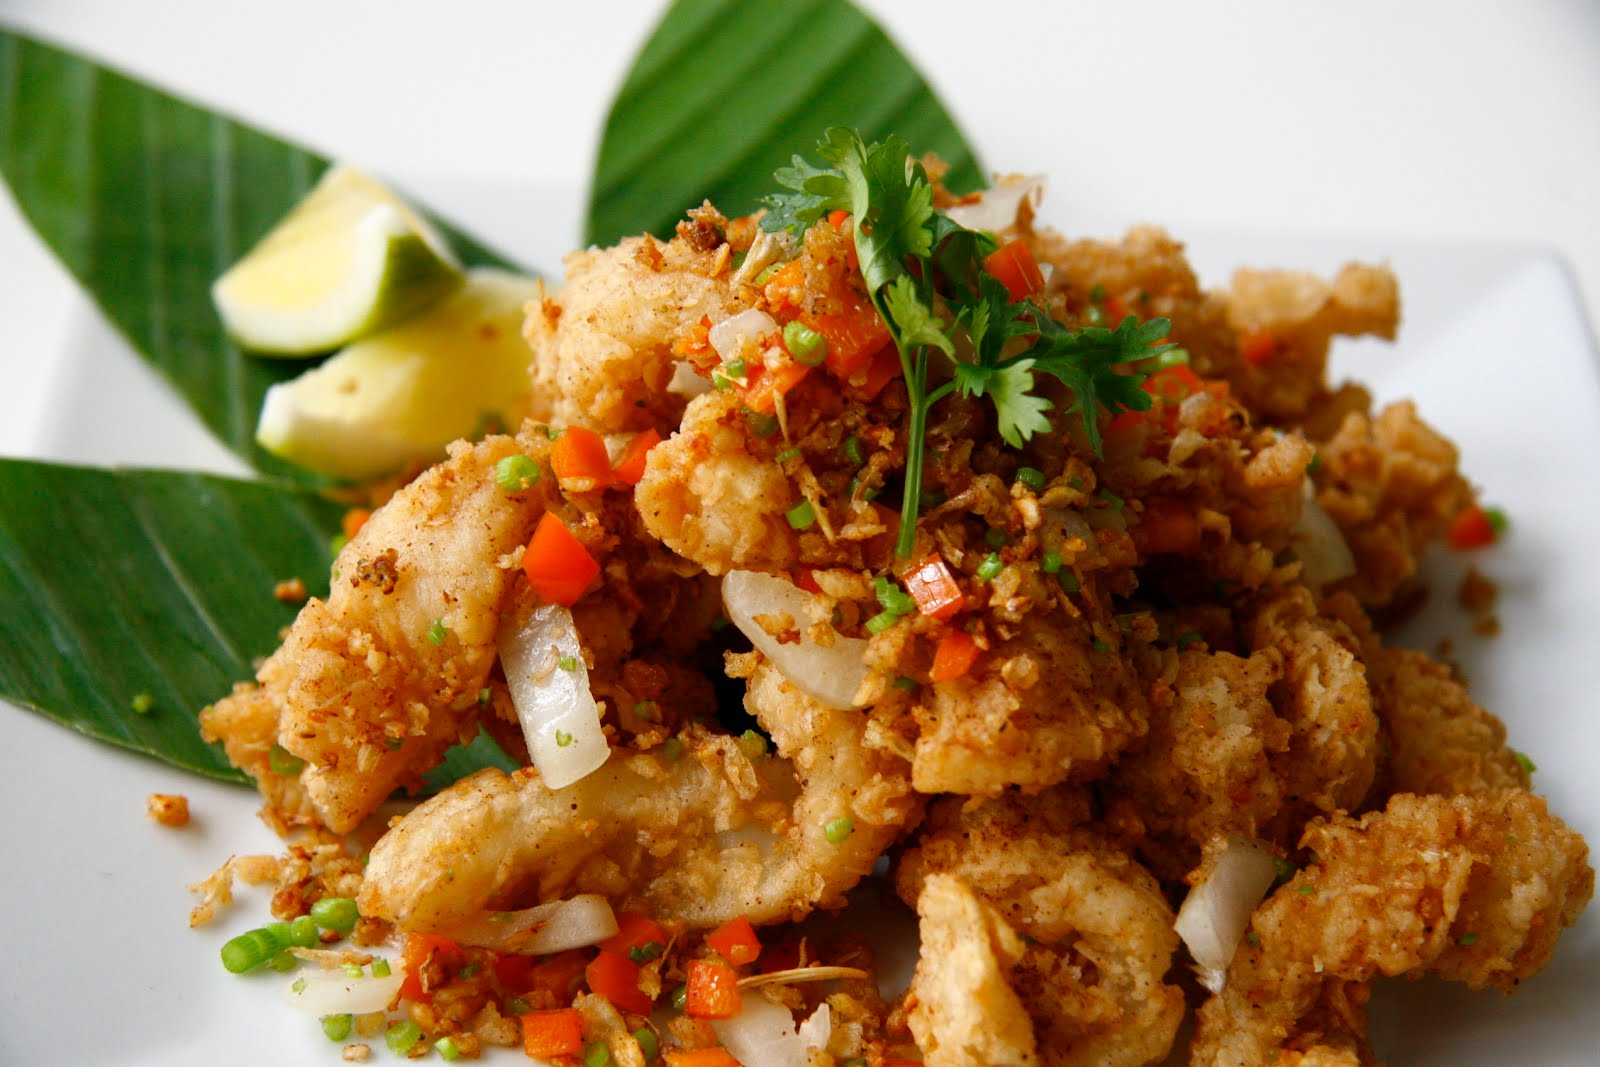 Spicy Lightly Breaded Calamari